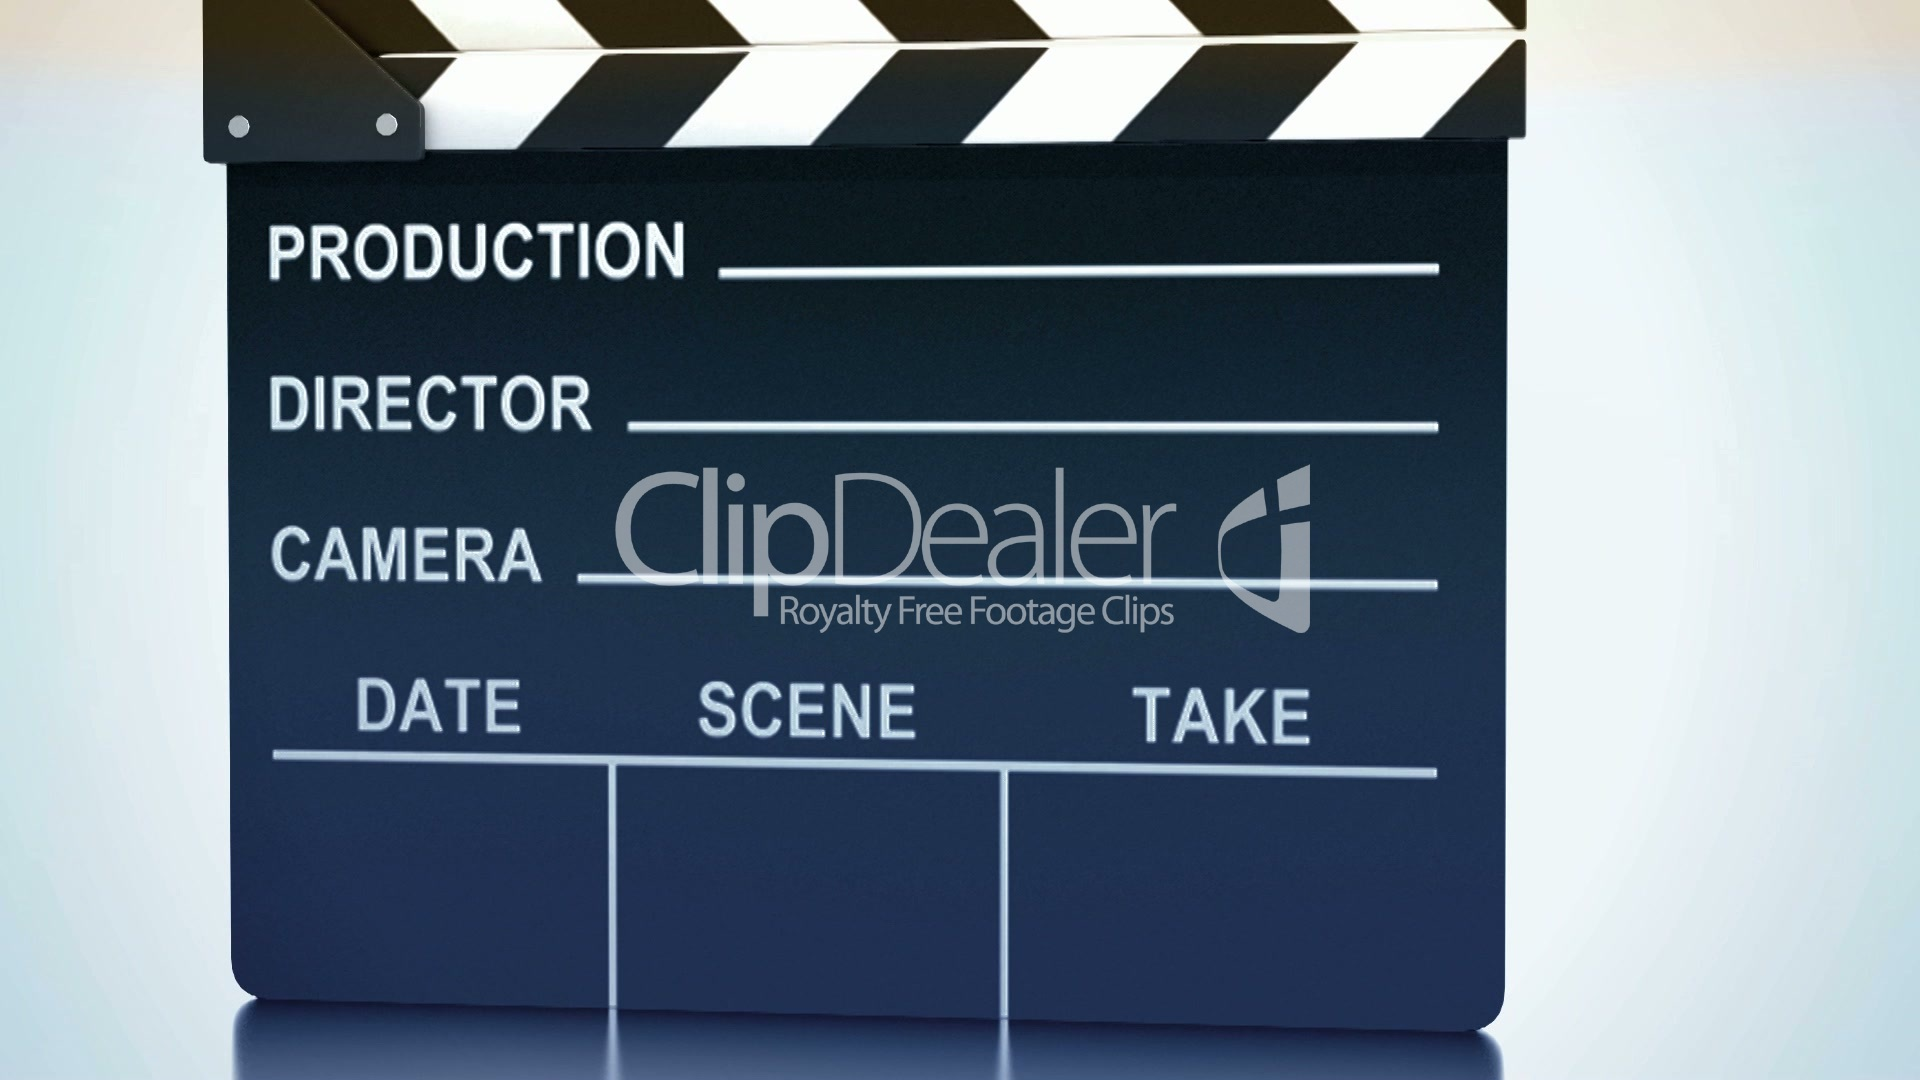 Clapping clapper with studio light Royalty free video and stock